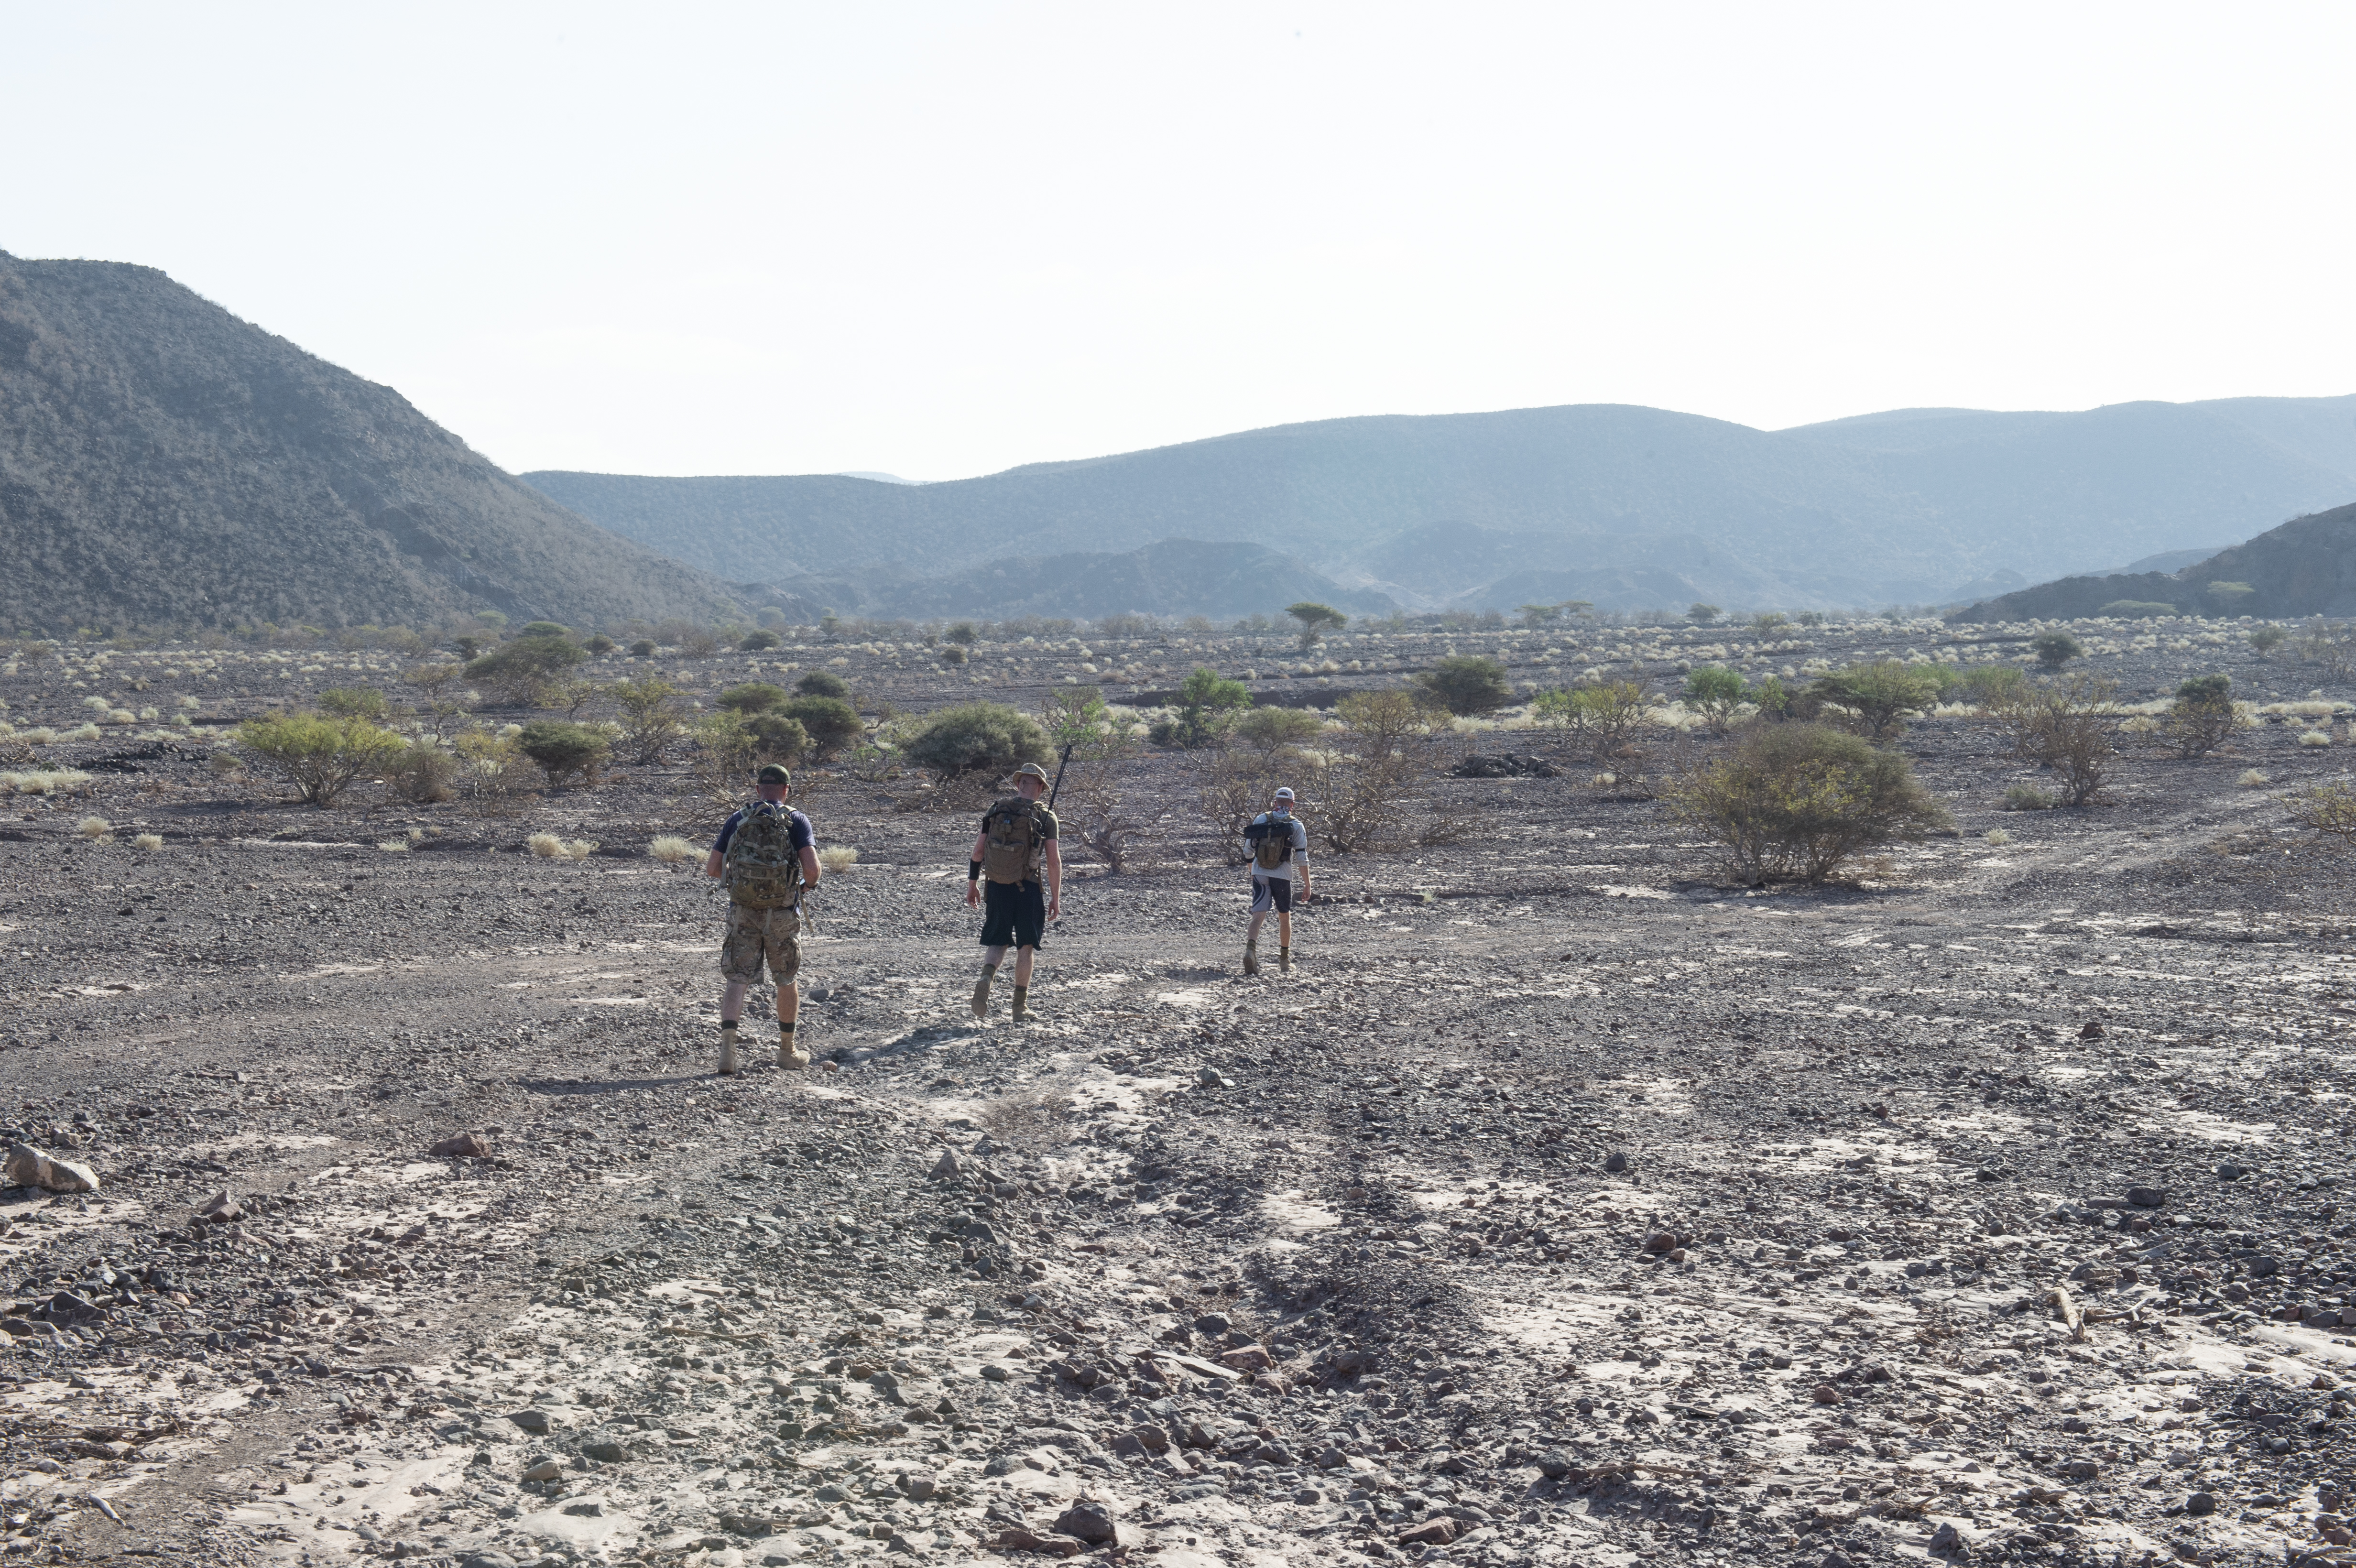 Tactical communication experts assigned to Combined Joint Task Force-Horn of Africa hike through a dry river bed on the way to a distant peak to test radio equipment during an exercise at the Arta Range Complex Jan. 18, 2019. The joint teams of Soldiers, Sailors and Marines utilized the exercise to test all forms of radio equipment they could be tasked to use in case of a last-minute forward deployment. (U.S. Air Force photo by Tech. Sgt. Shawn Nickel)